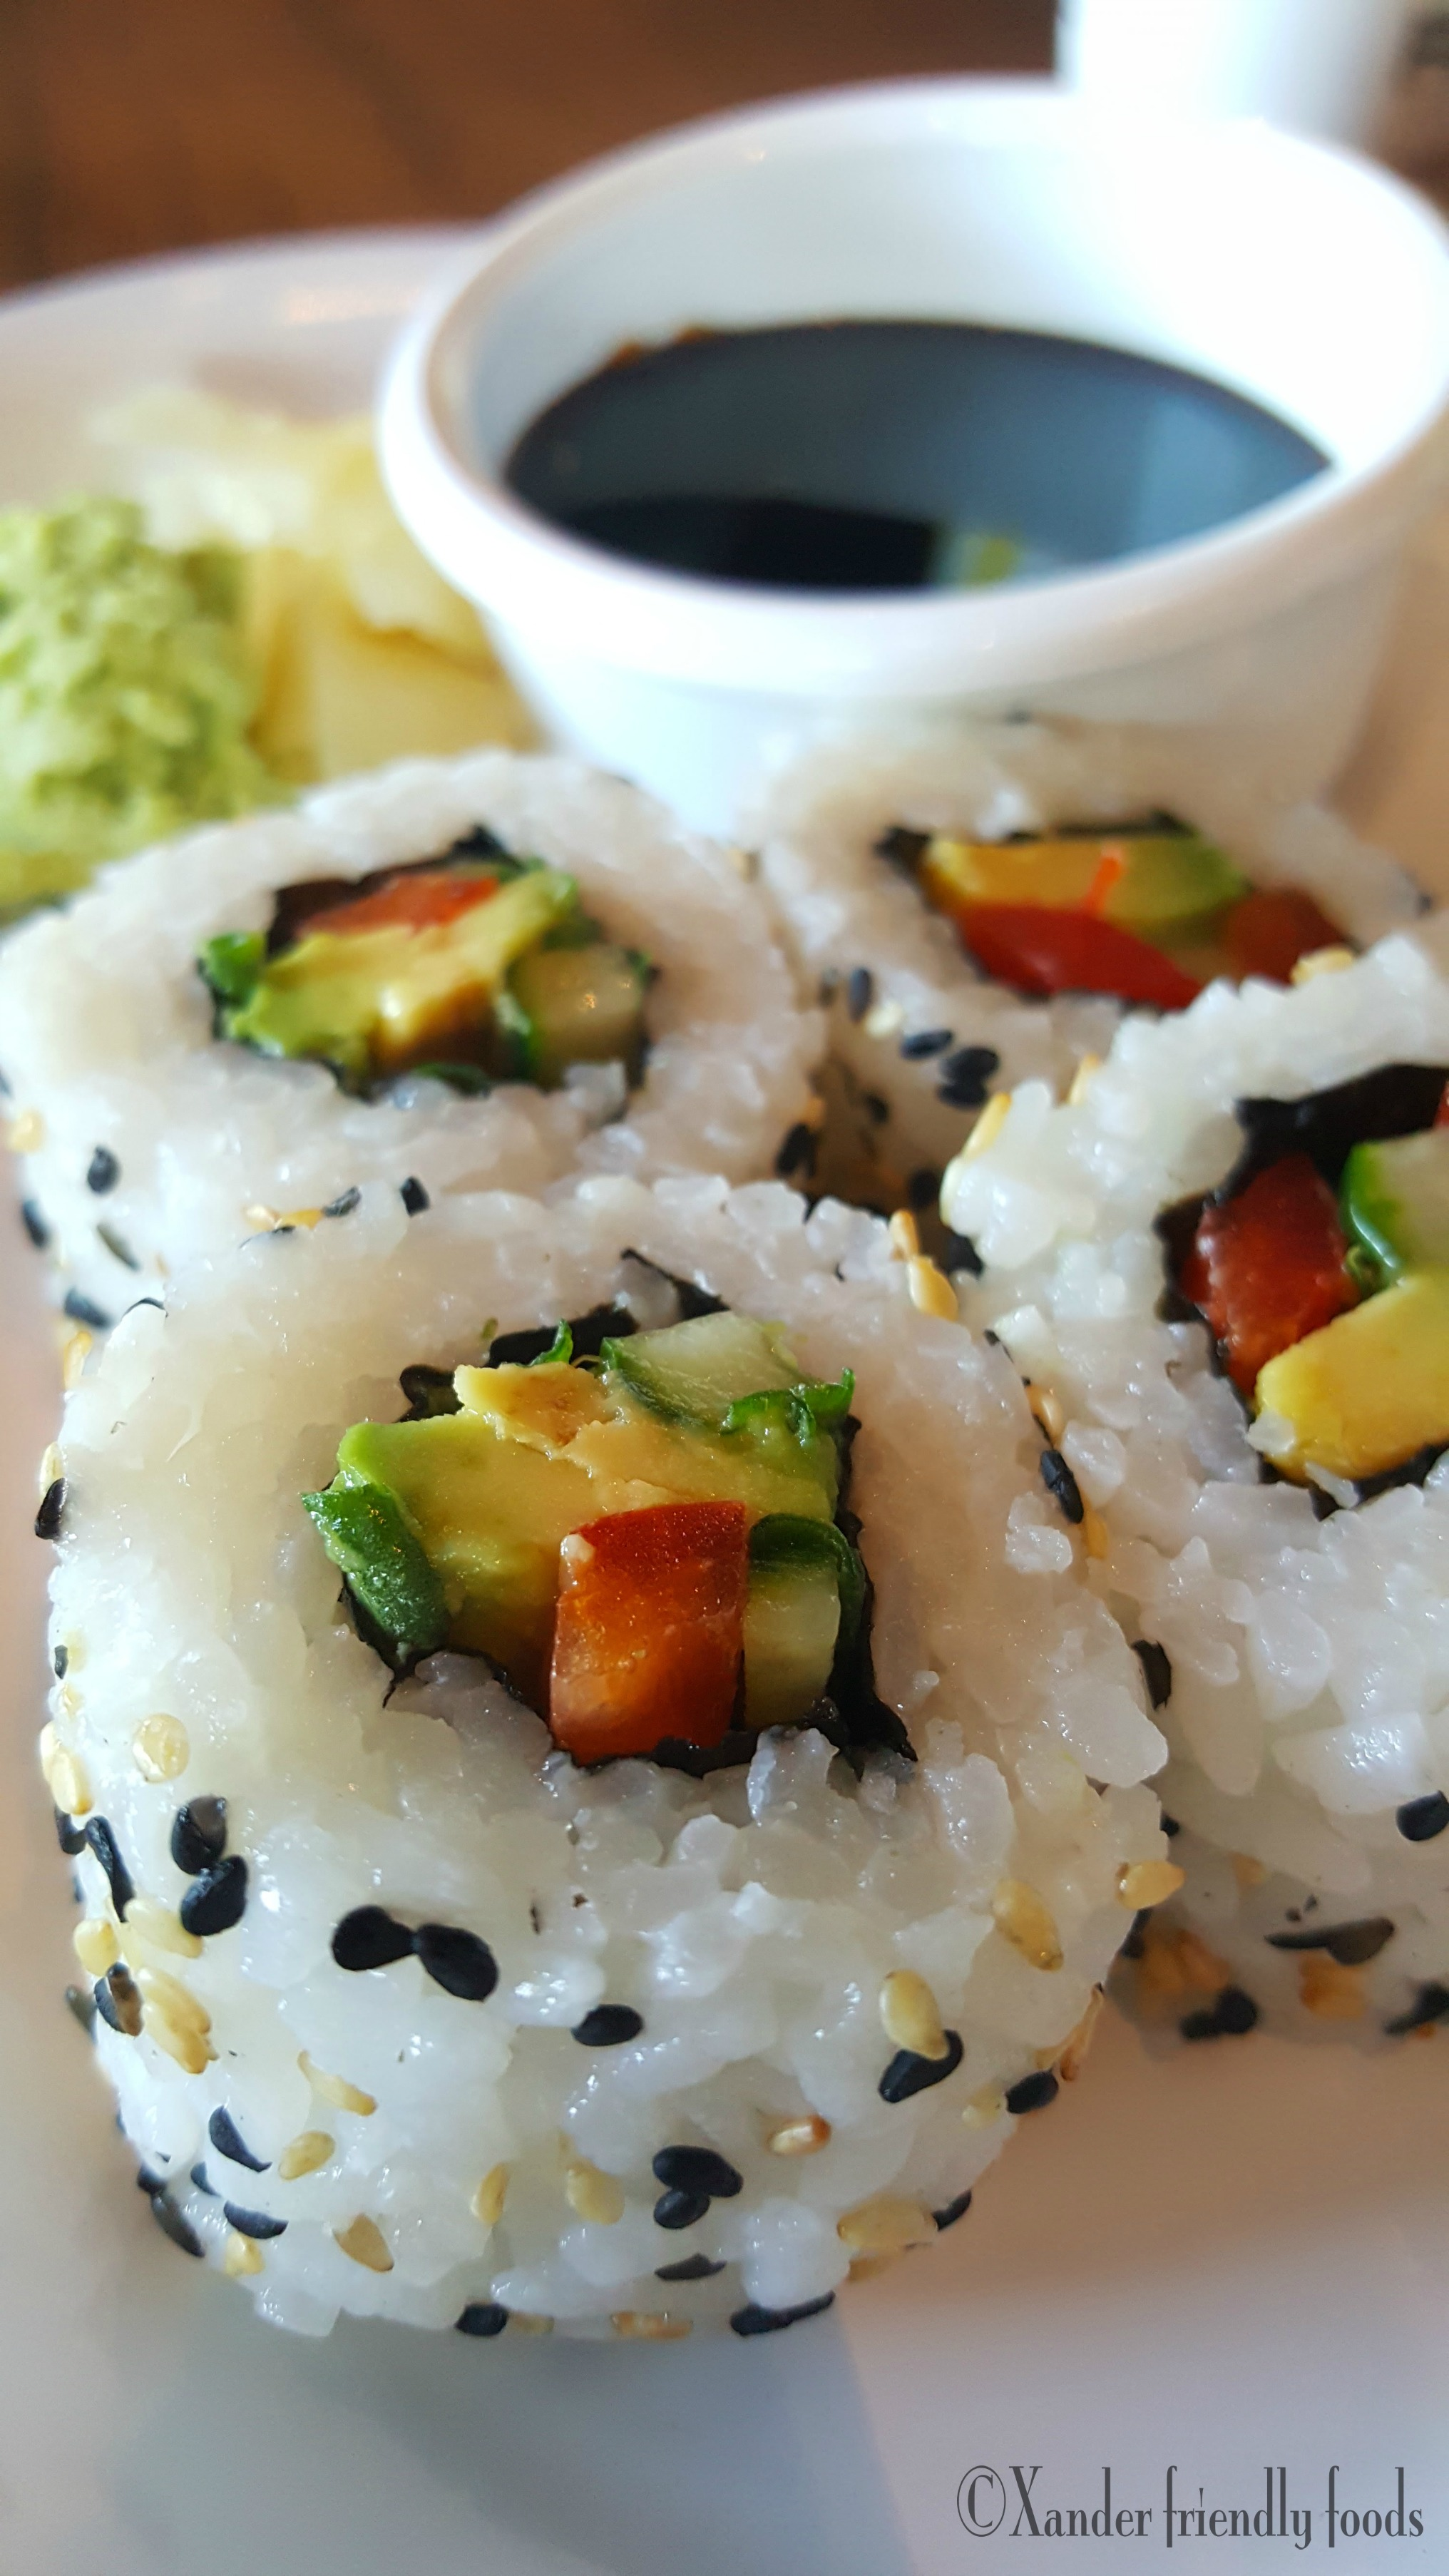 Fresh made, Cucumber Avocado Rolls with sweet red bell peppers and bits of scallions.